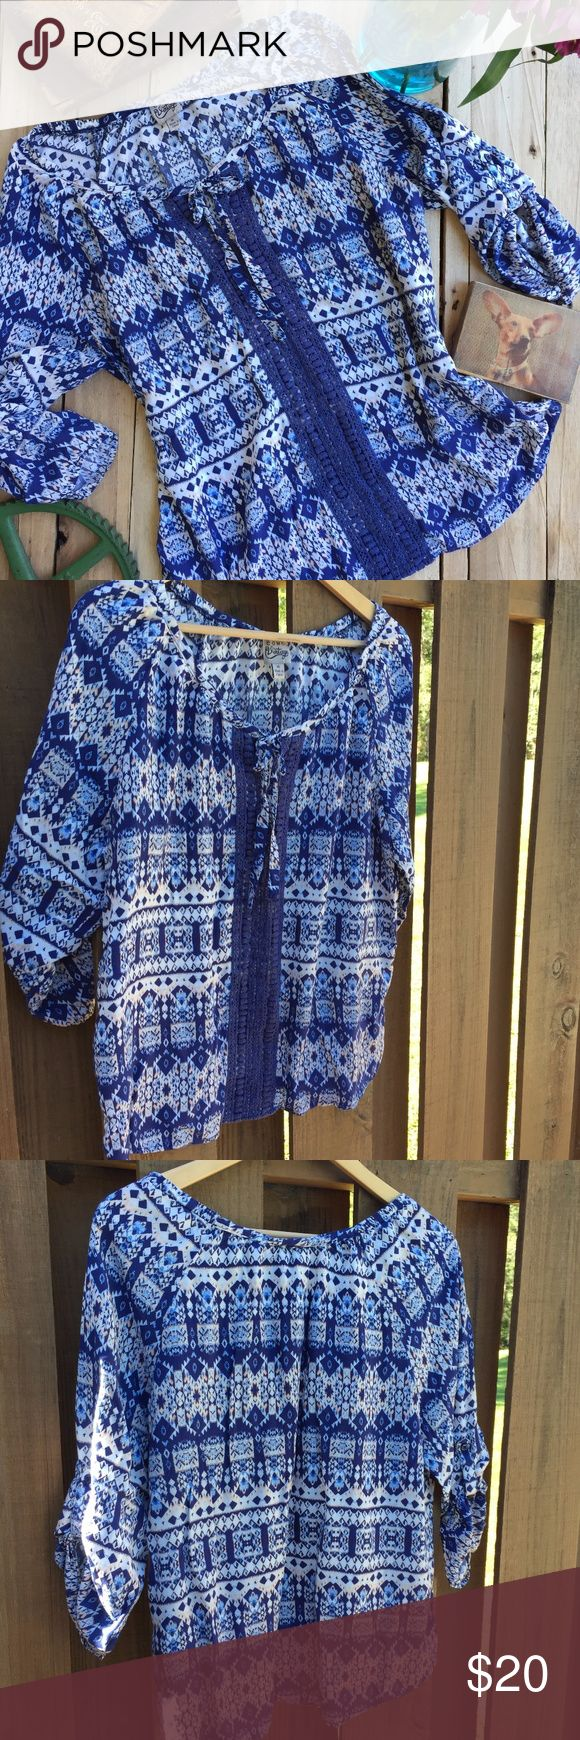 Como Vintage Boho Aztec Top XL Como Vintage Boho Aztec Top. Pretty color combo of blue, white, and cream. Lightweight fabric and a nice flowy fit. This top is in excellent preowned condition.  Size XL. Como Vintage Tops